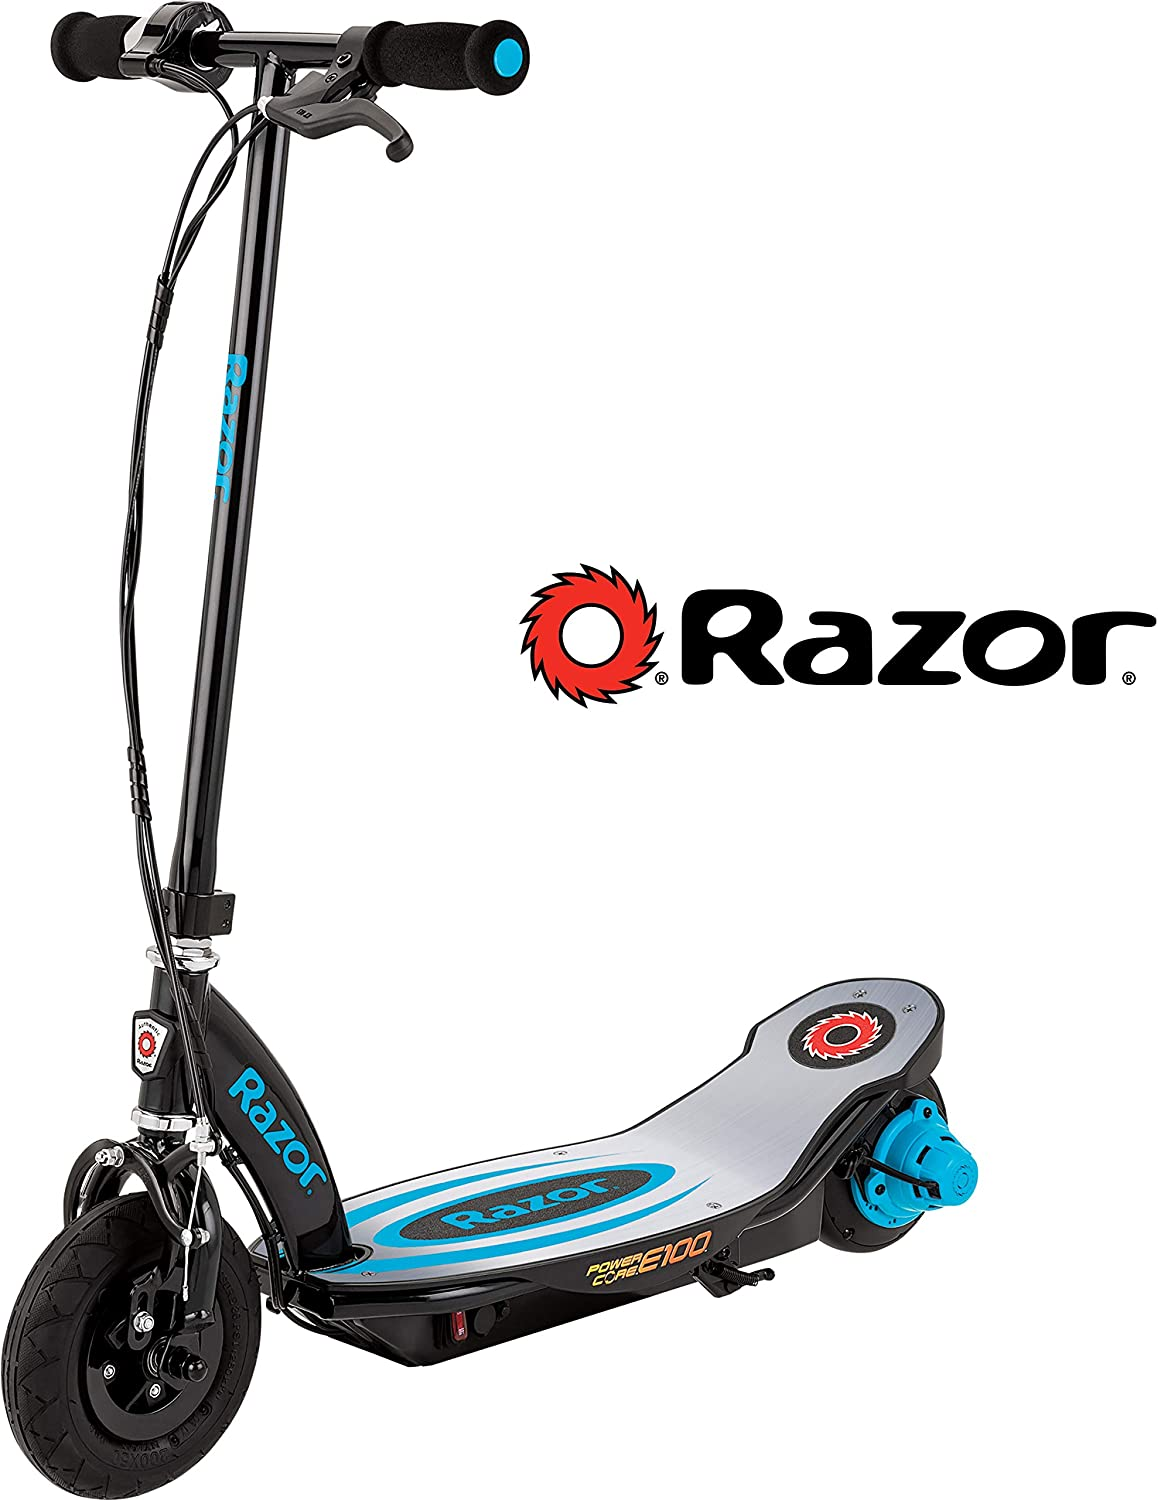 Amazon.com: Razor Power Core E100 - Scooter eléctrico ...